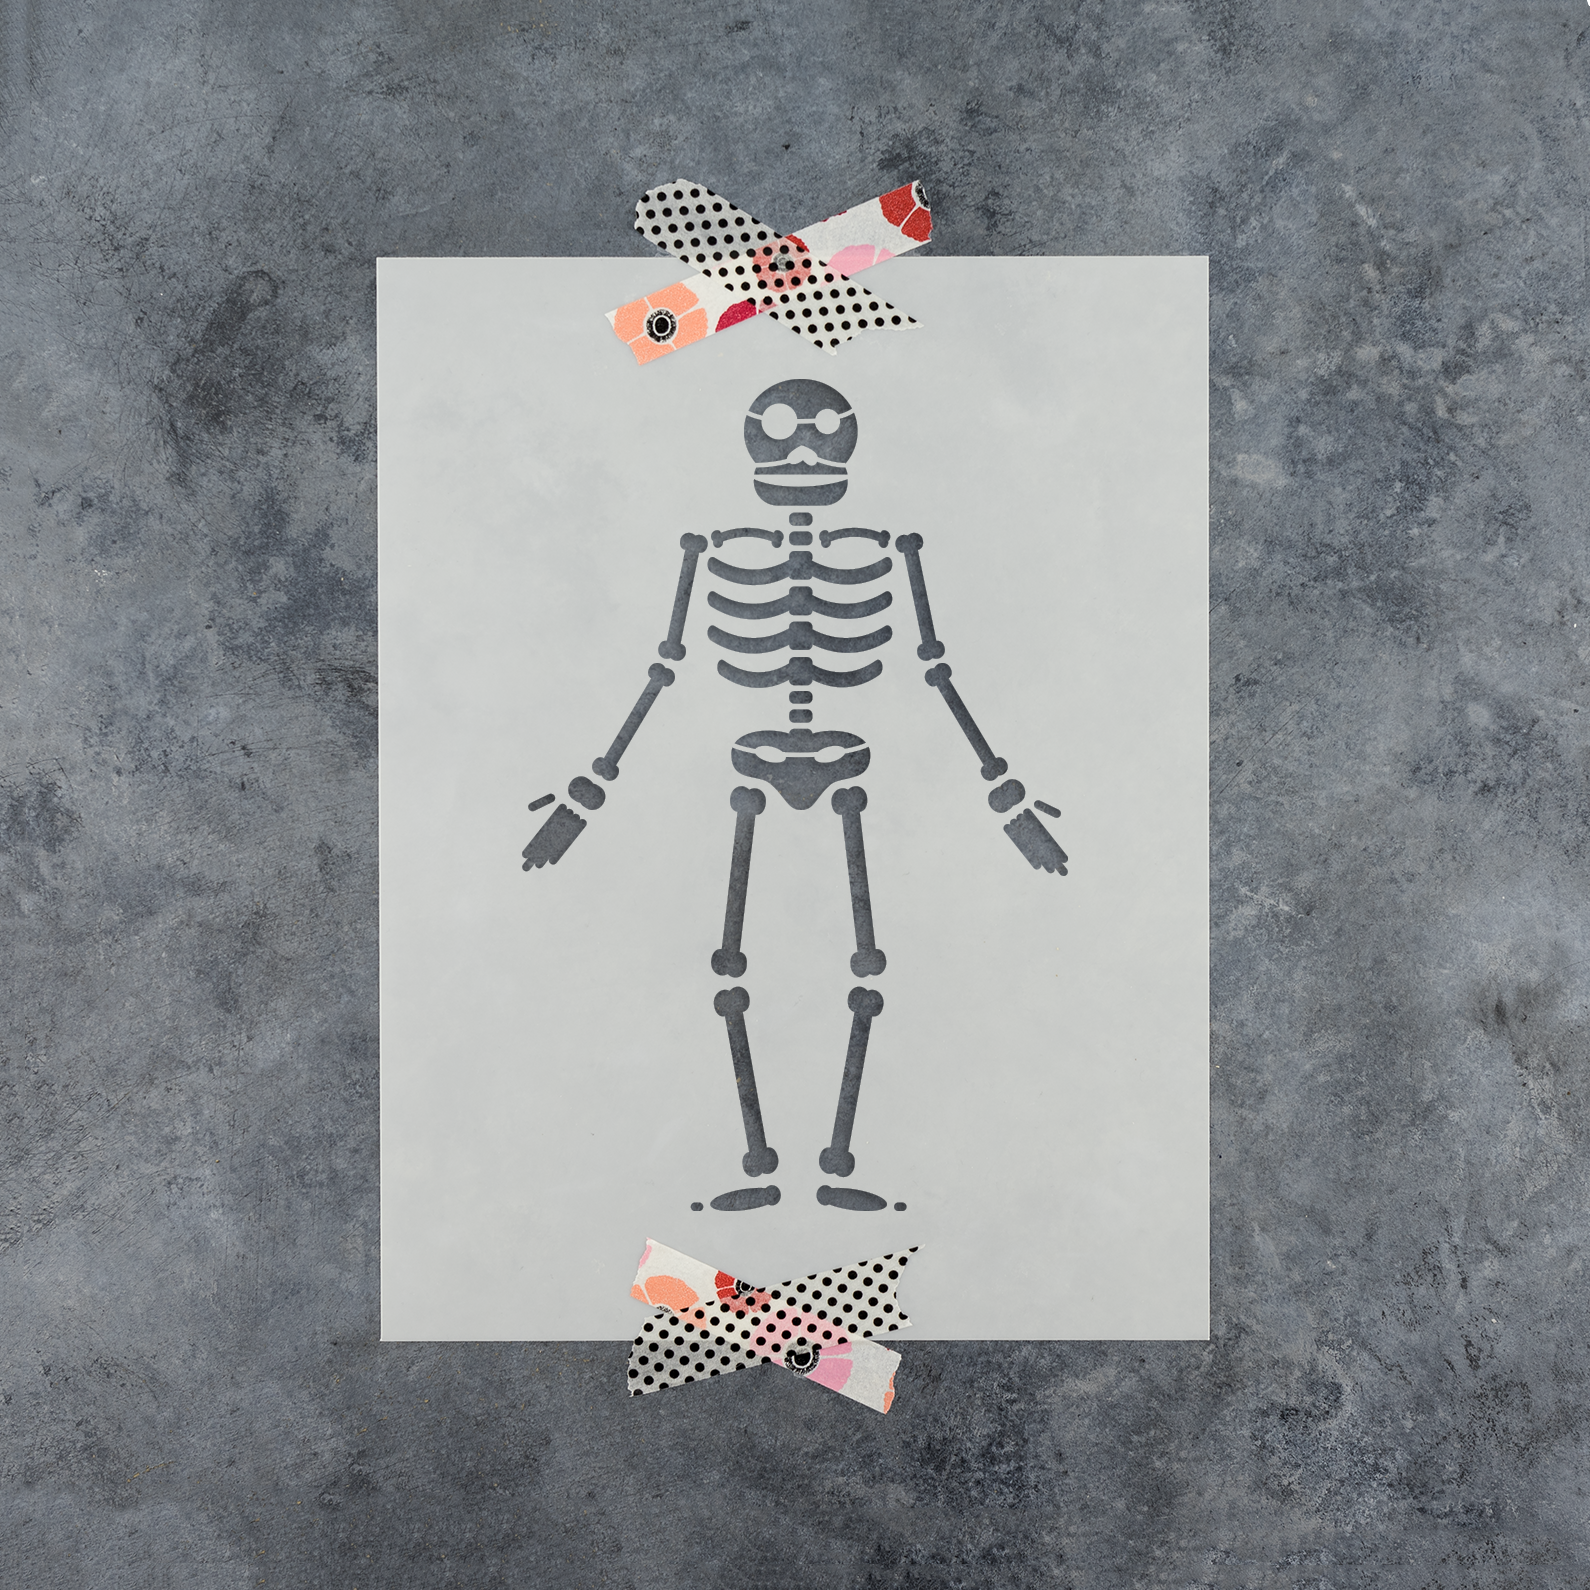 Skeleton Stencil - Reusable Stencils of a Skeleton in Multiple Sizes